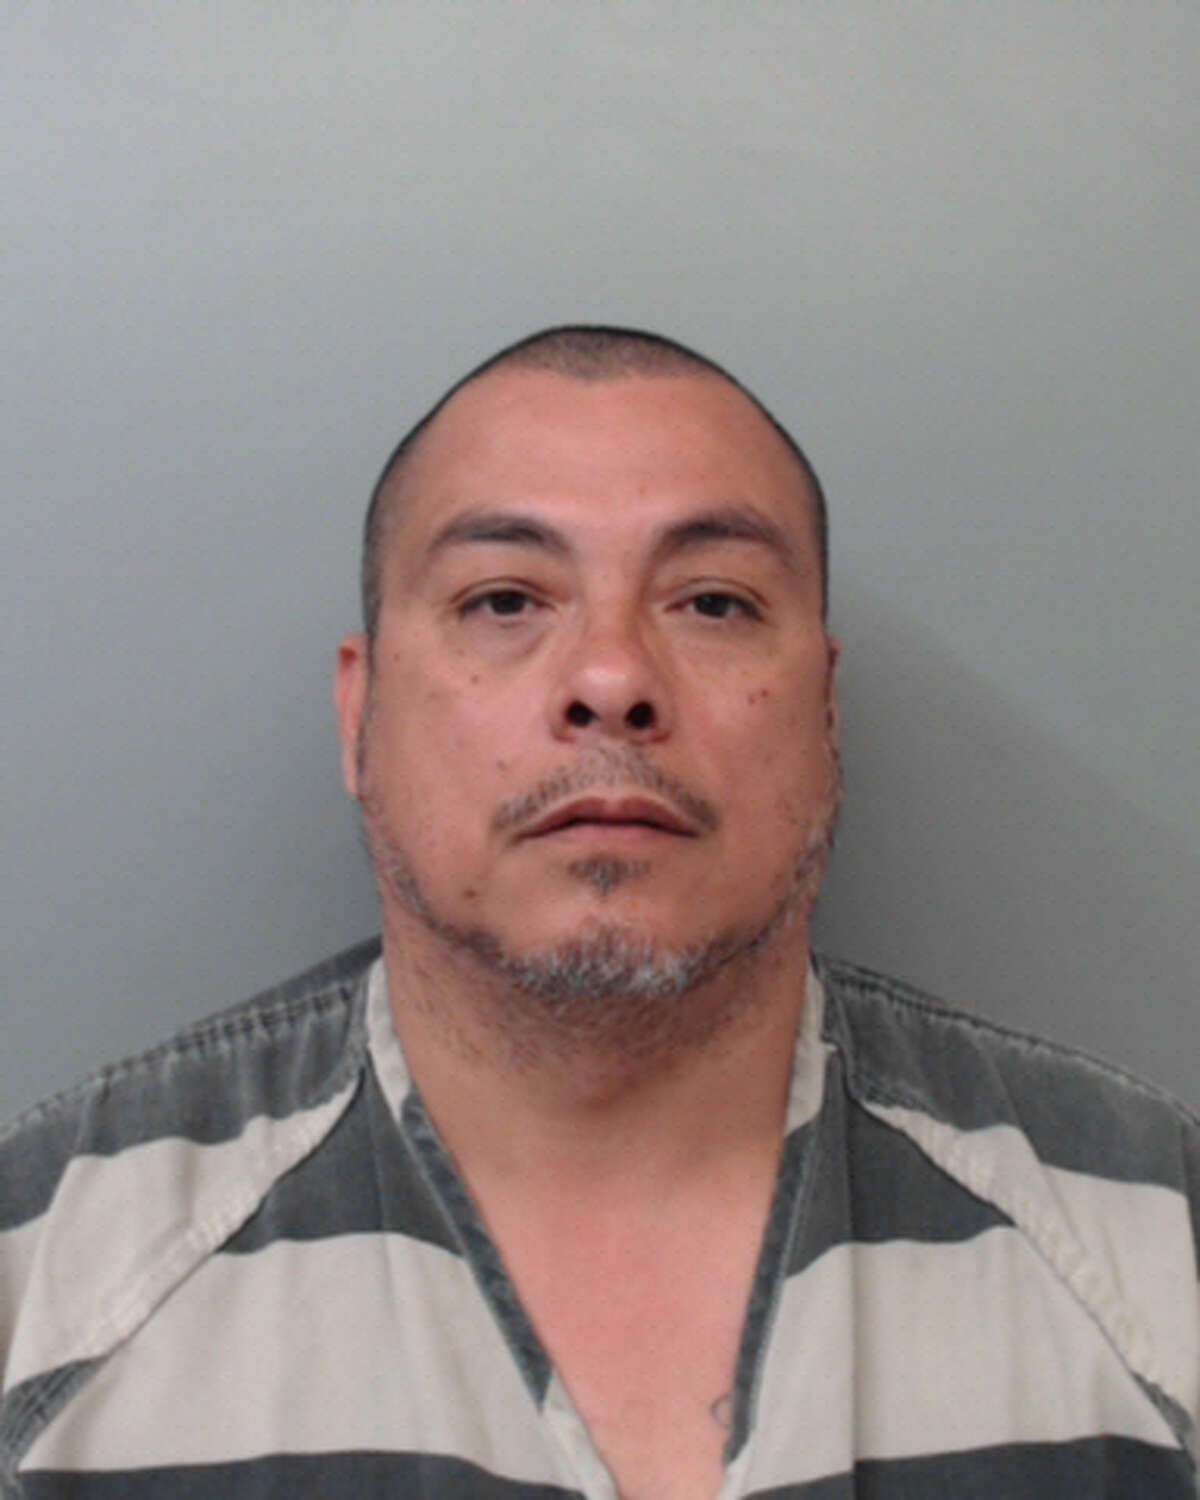 On Tuesday, 111th District Court Judge Monica Z. Notzon handed Mateo Gonzalo Arredondo a five-year probated sentence. Deferred adjudication was also granted.